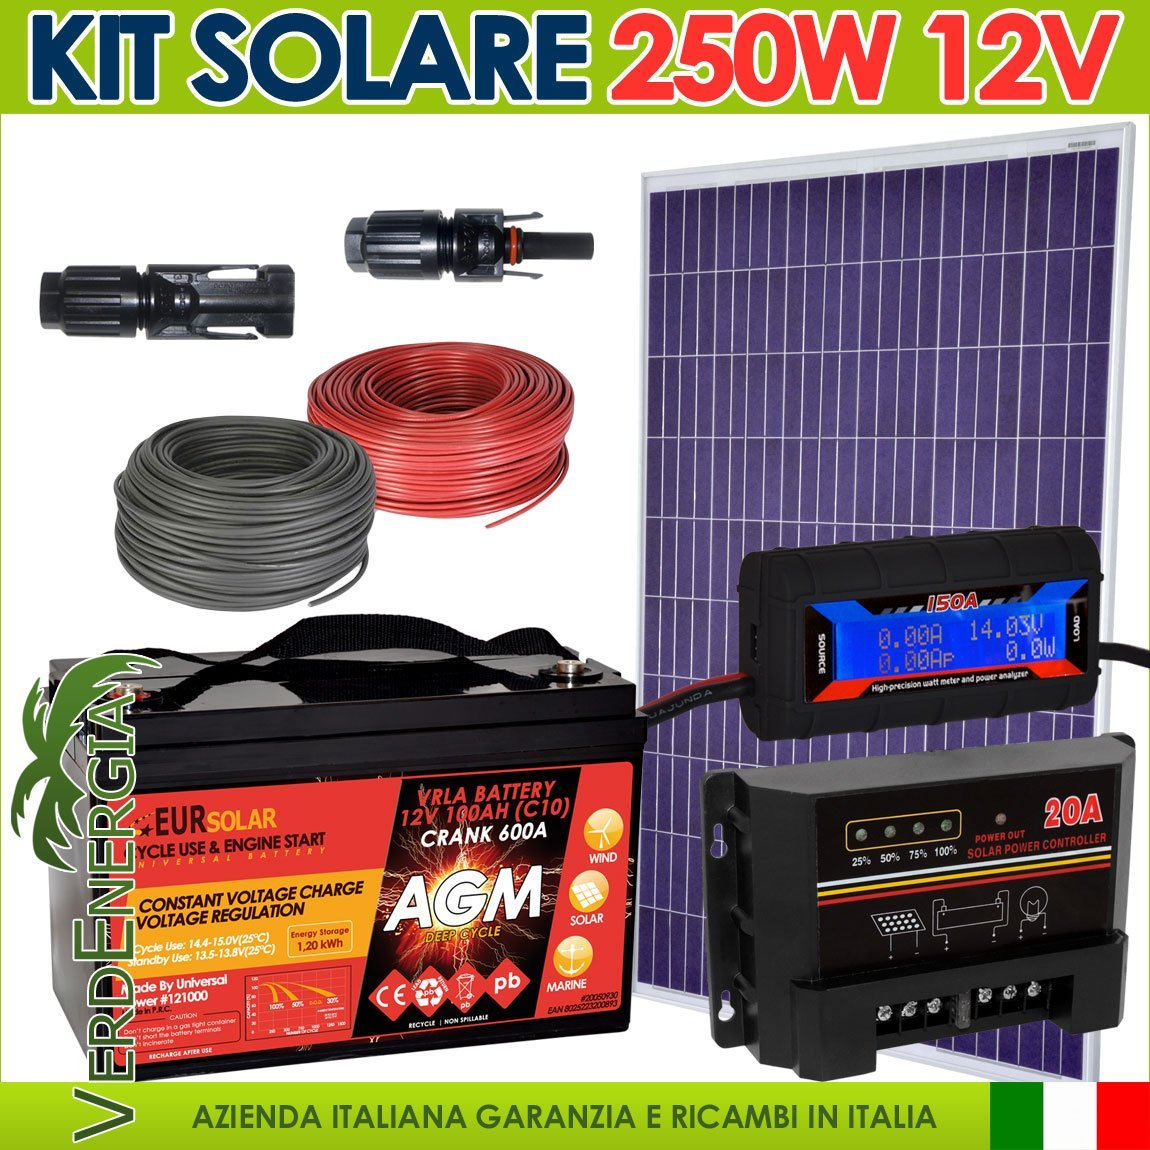 Kit solar 250 W Photovoltaik 12 V Poly Regler PWM 12 V 20 A Stecker MC4 Kabel Batterie Messgerät